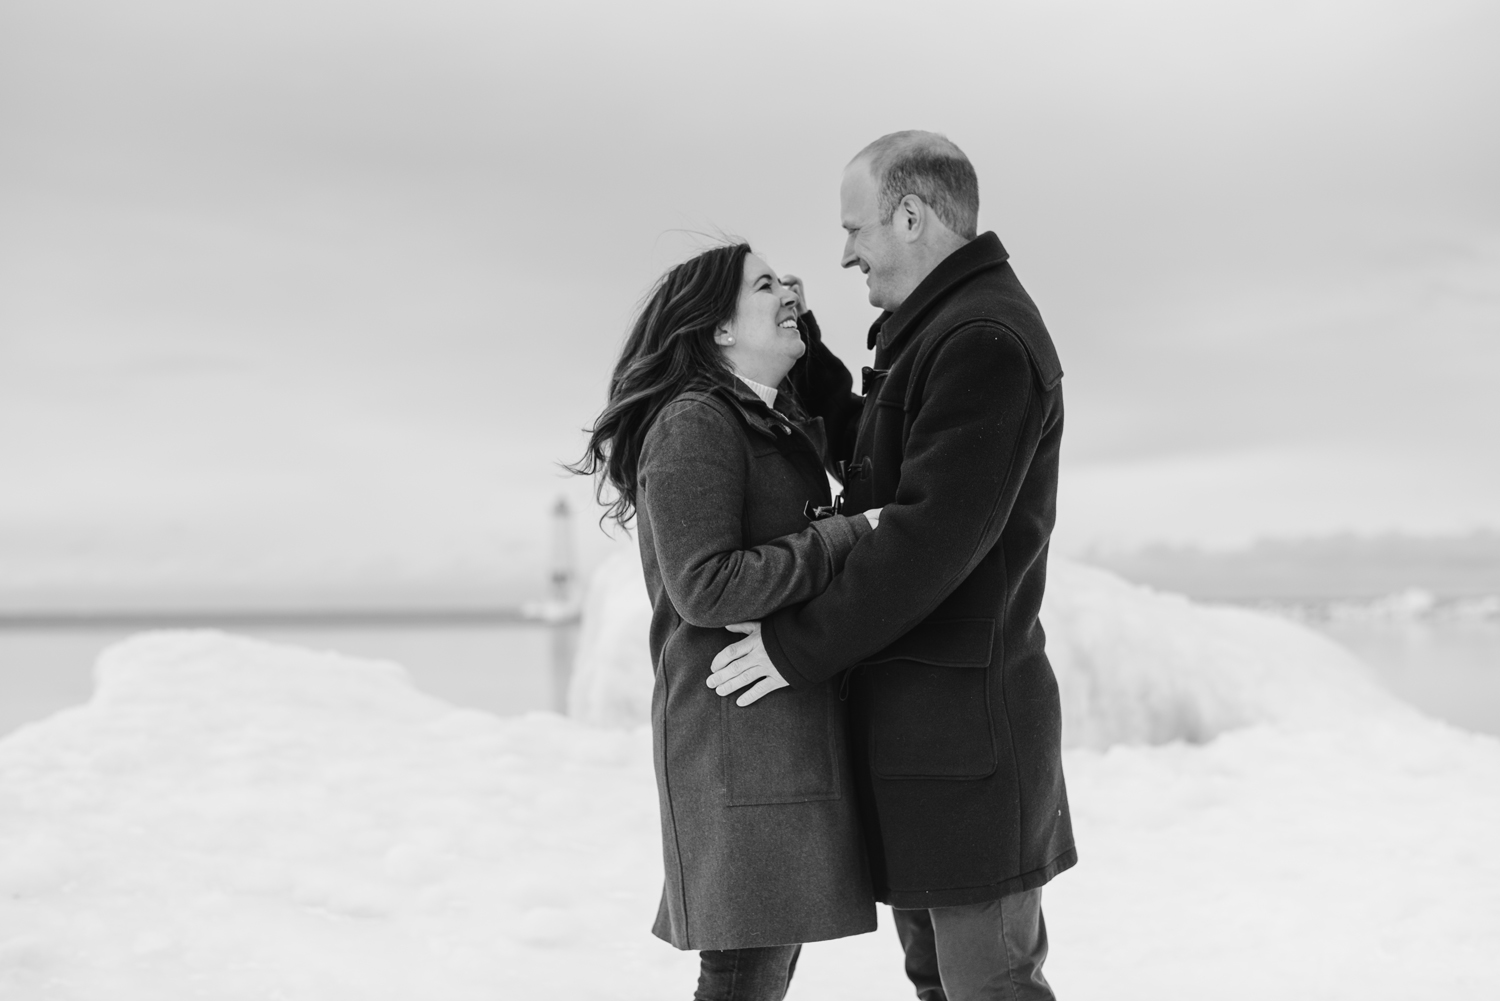 frankfort-michigan-winter-engagement-session (38).jpg